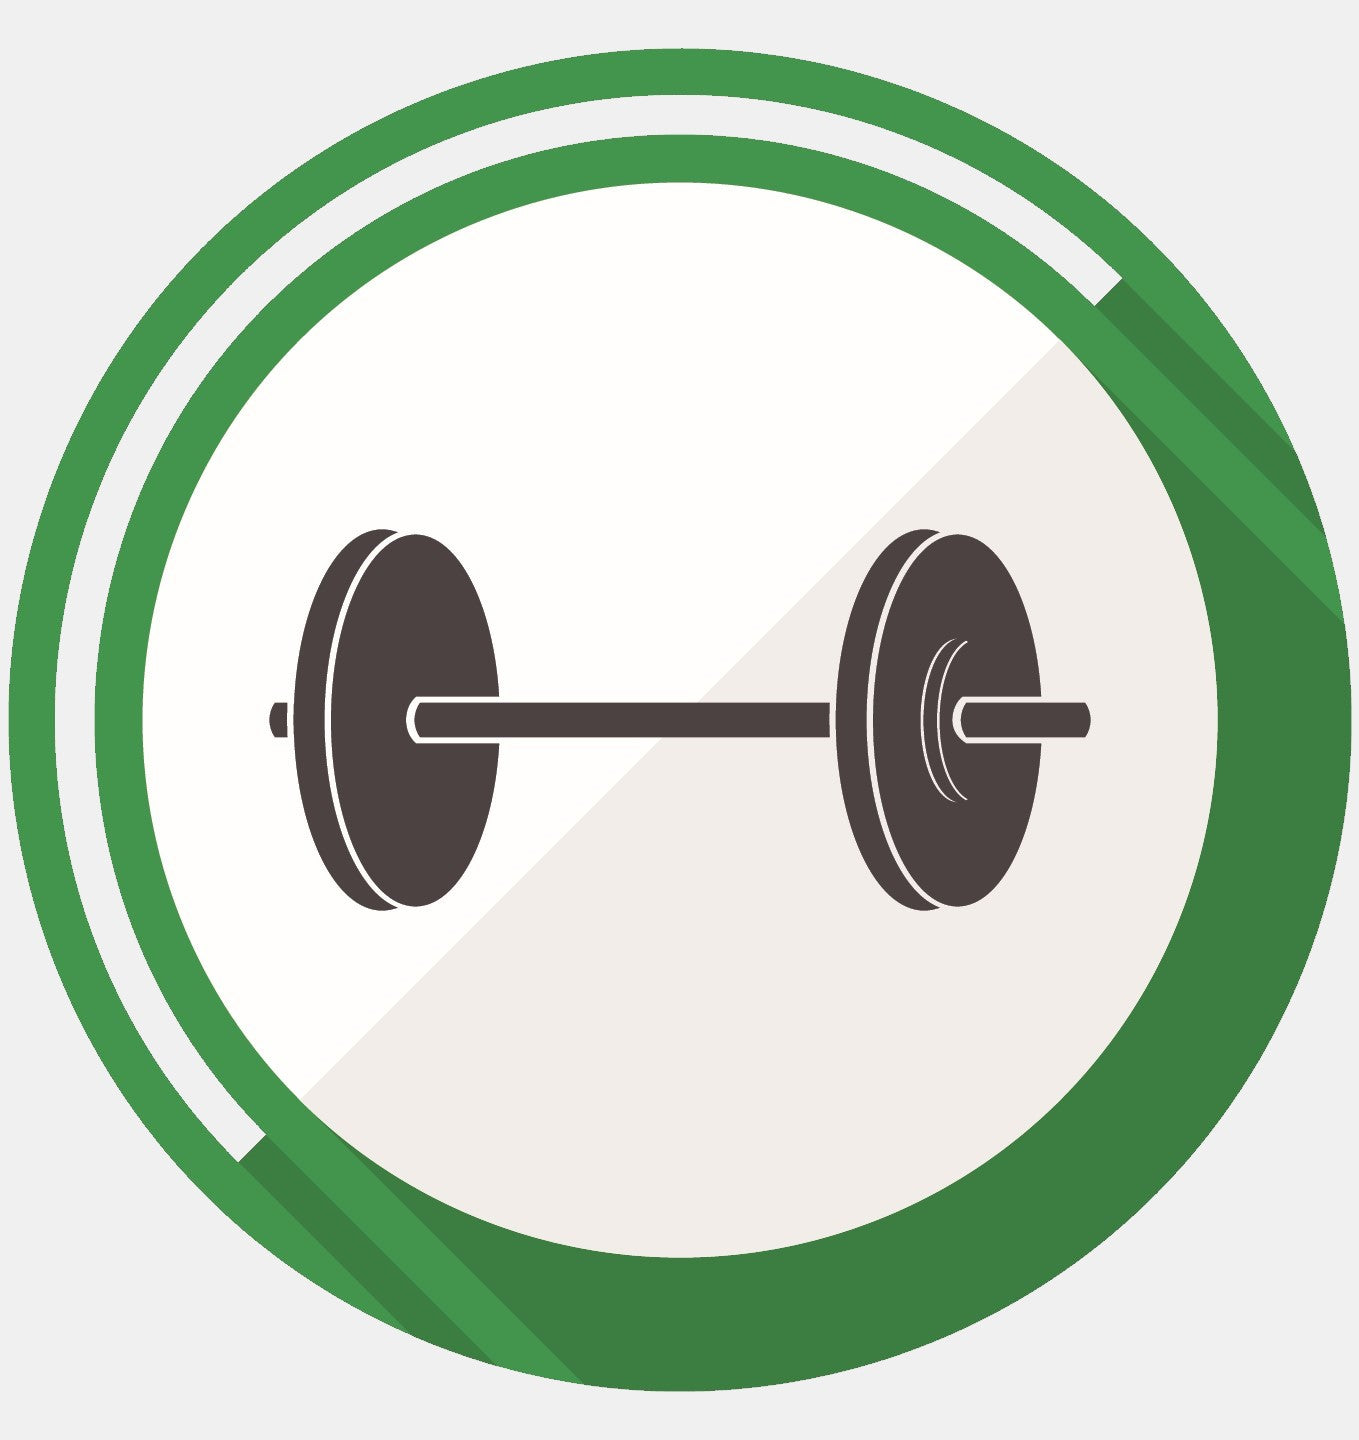 Weight bench (icon)